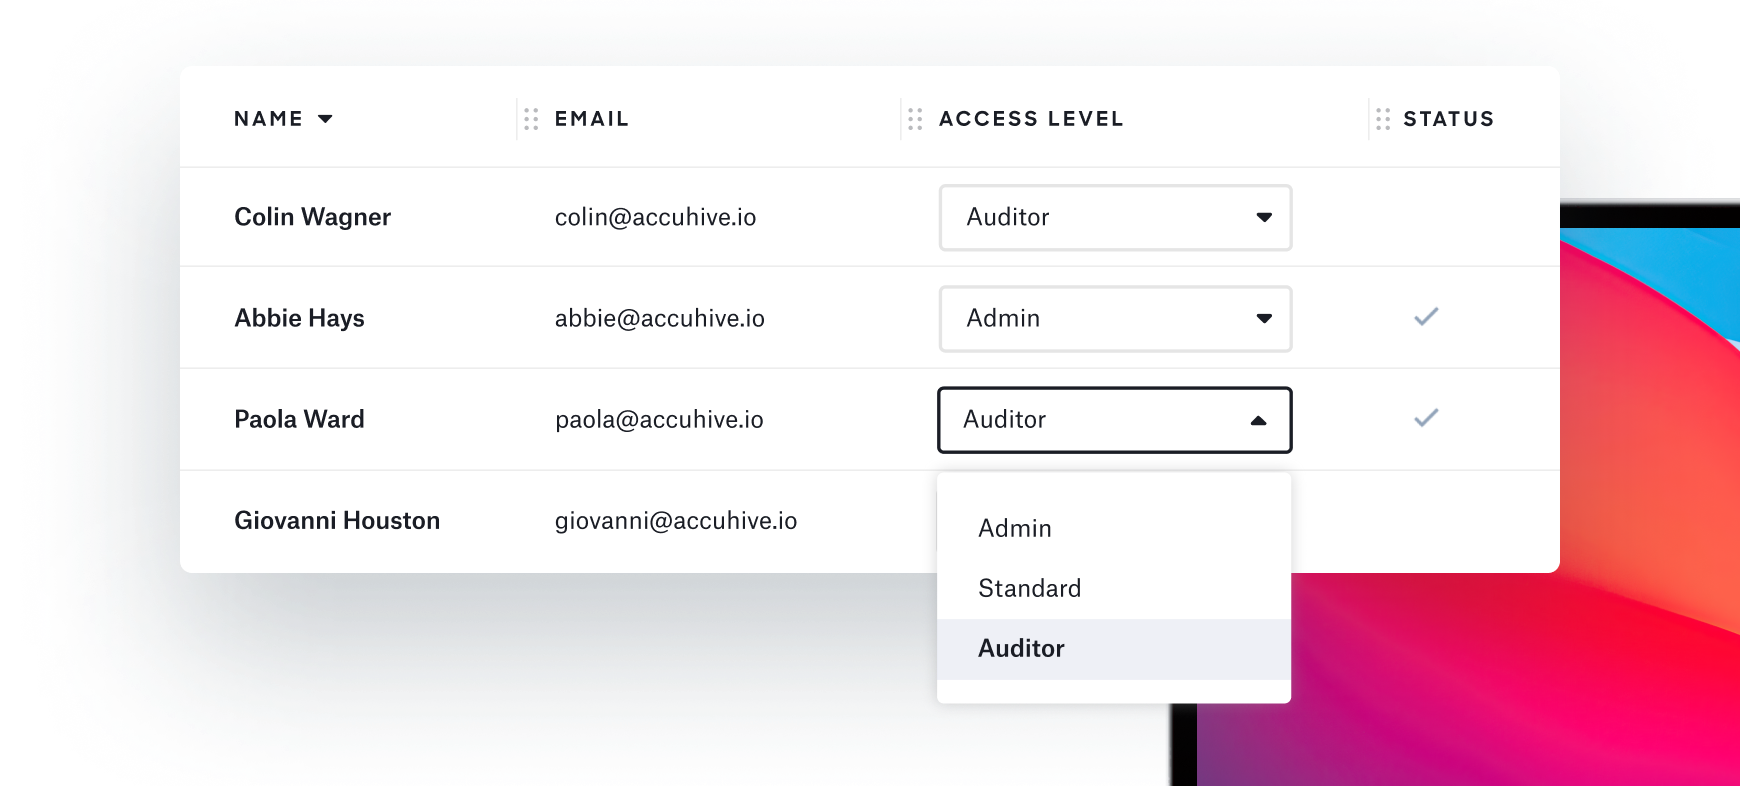 Auditor access